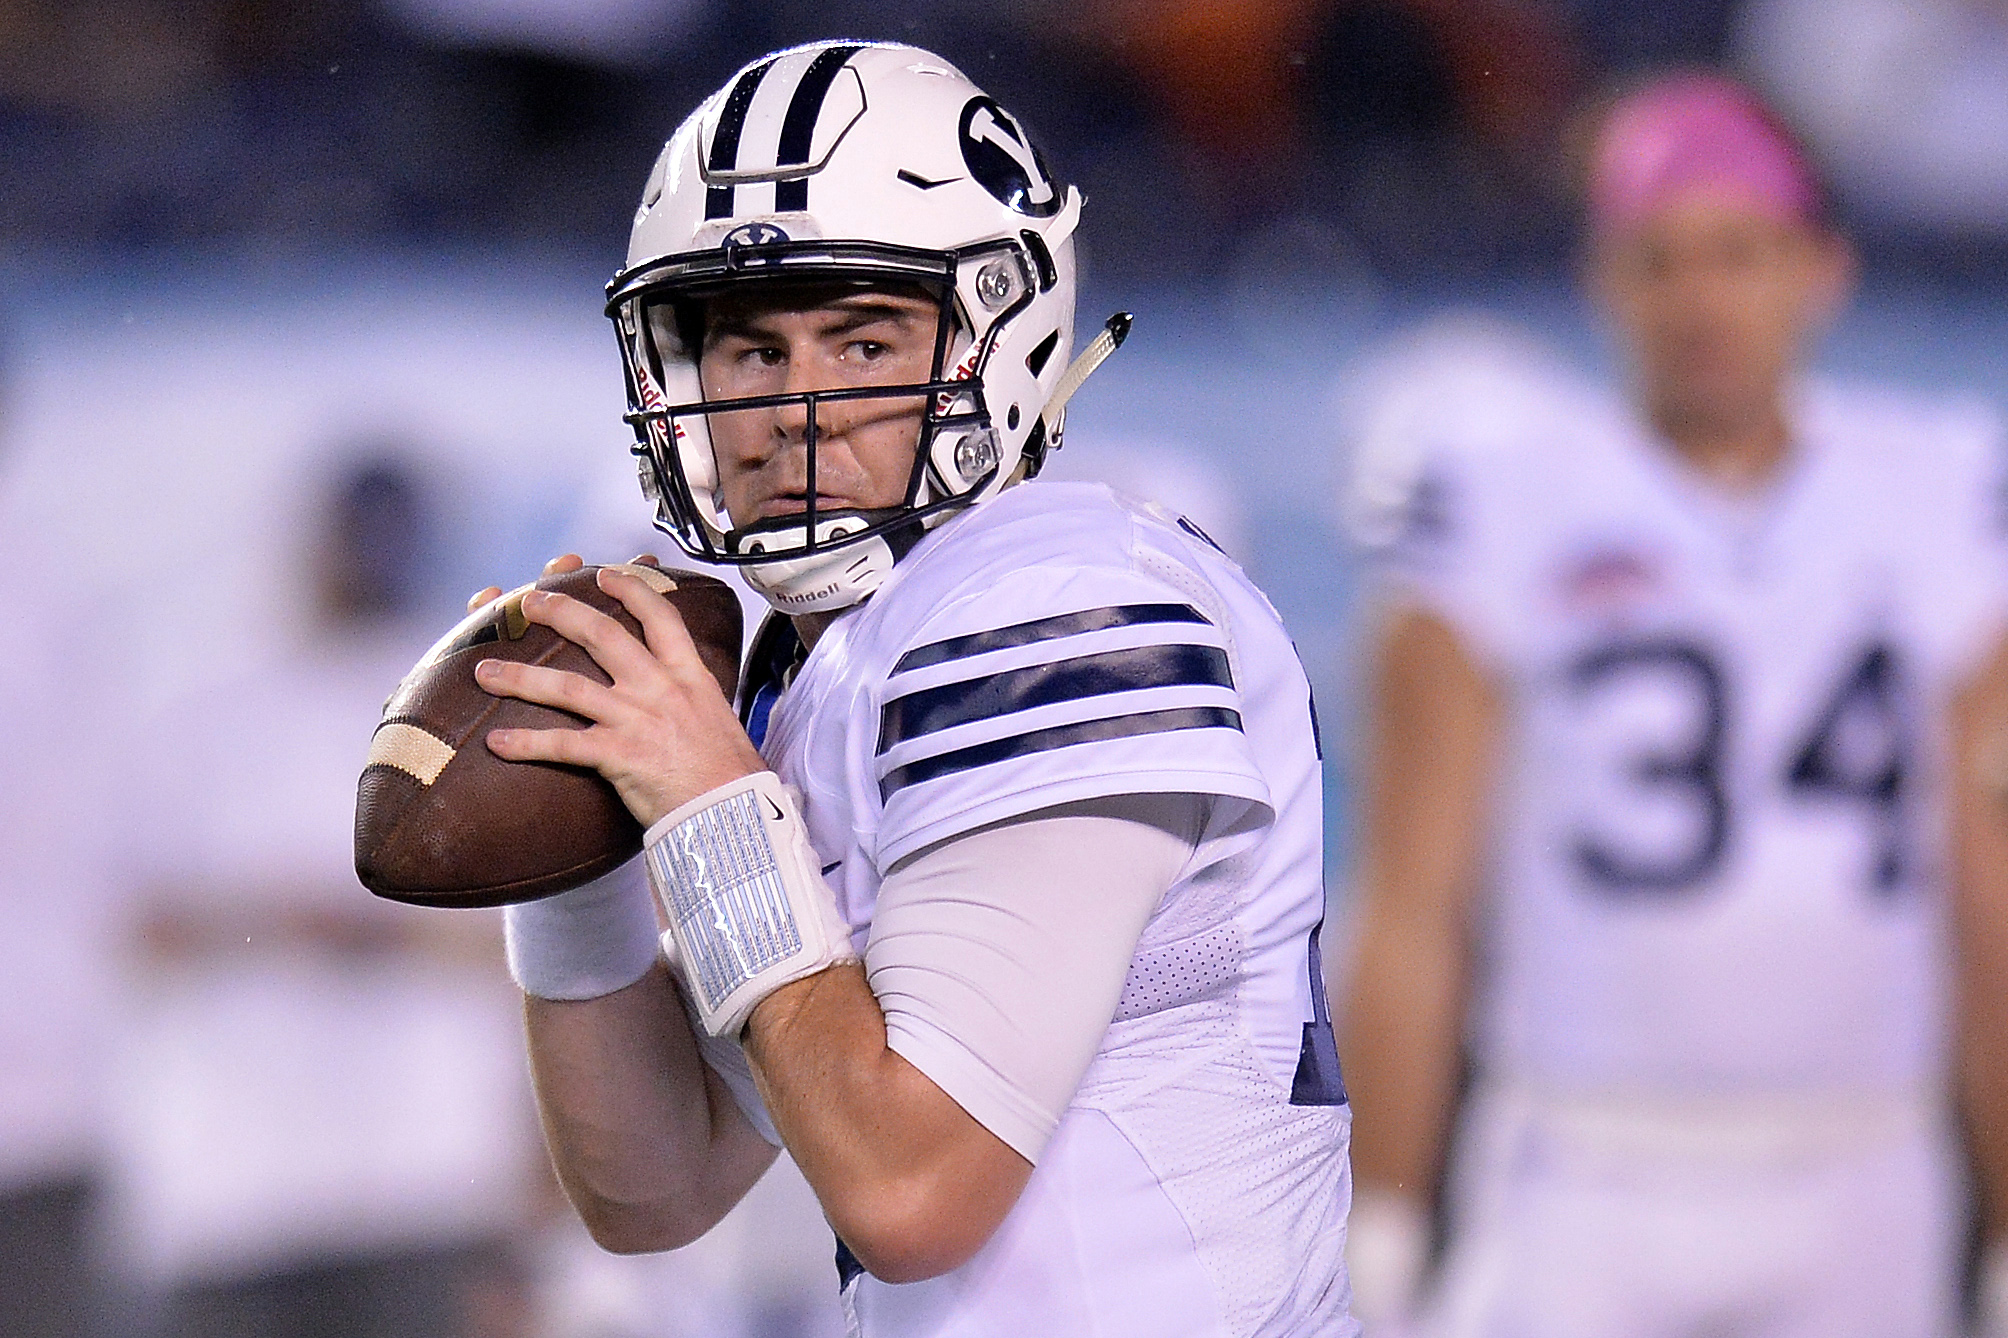 9760905-ncaa-football-poinsettia-bowl-brigham-young-vs-wyoming